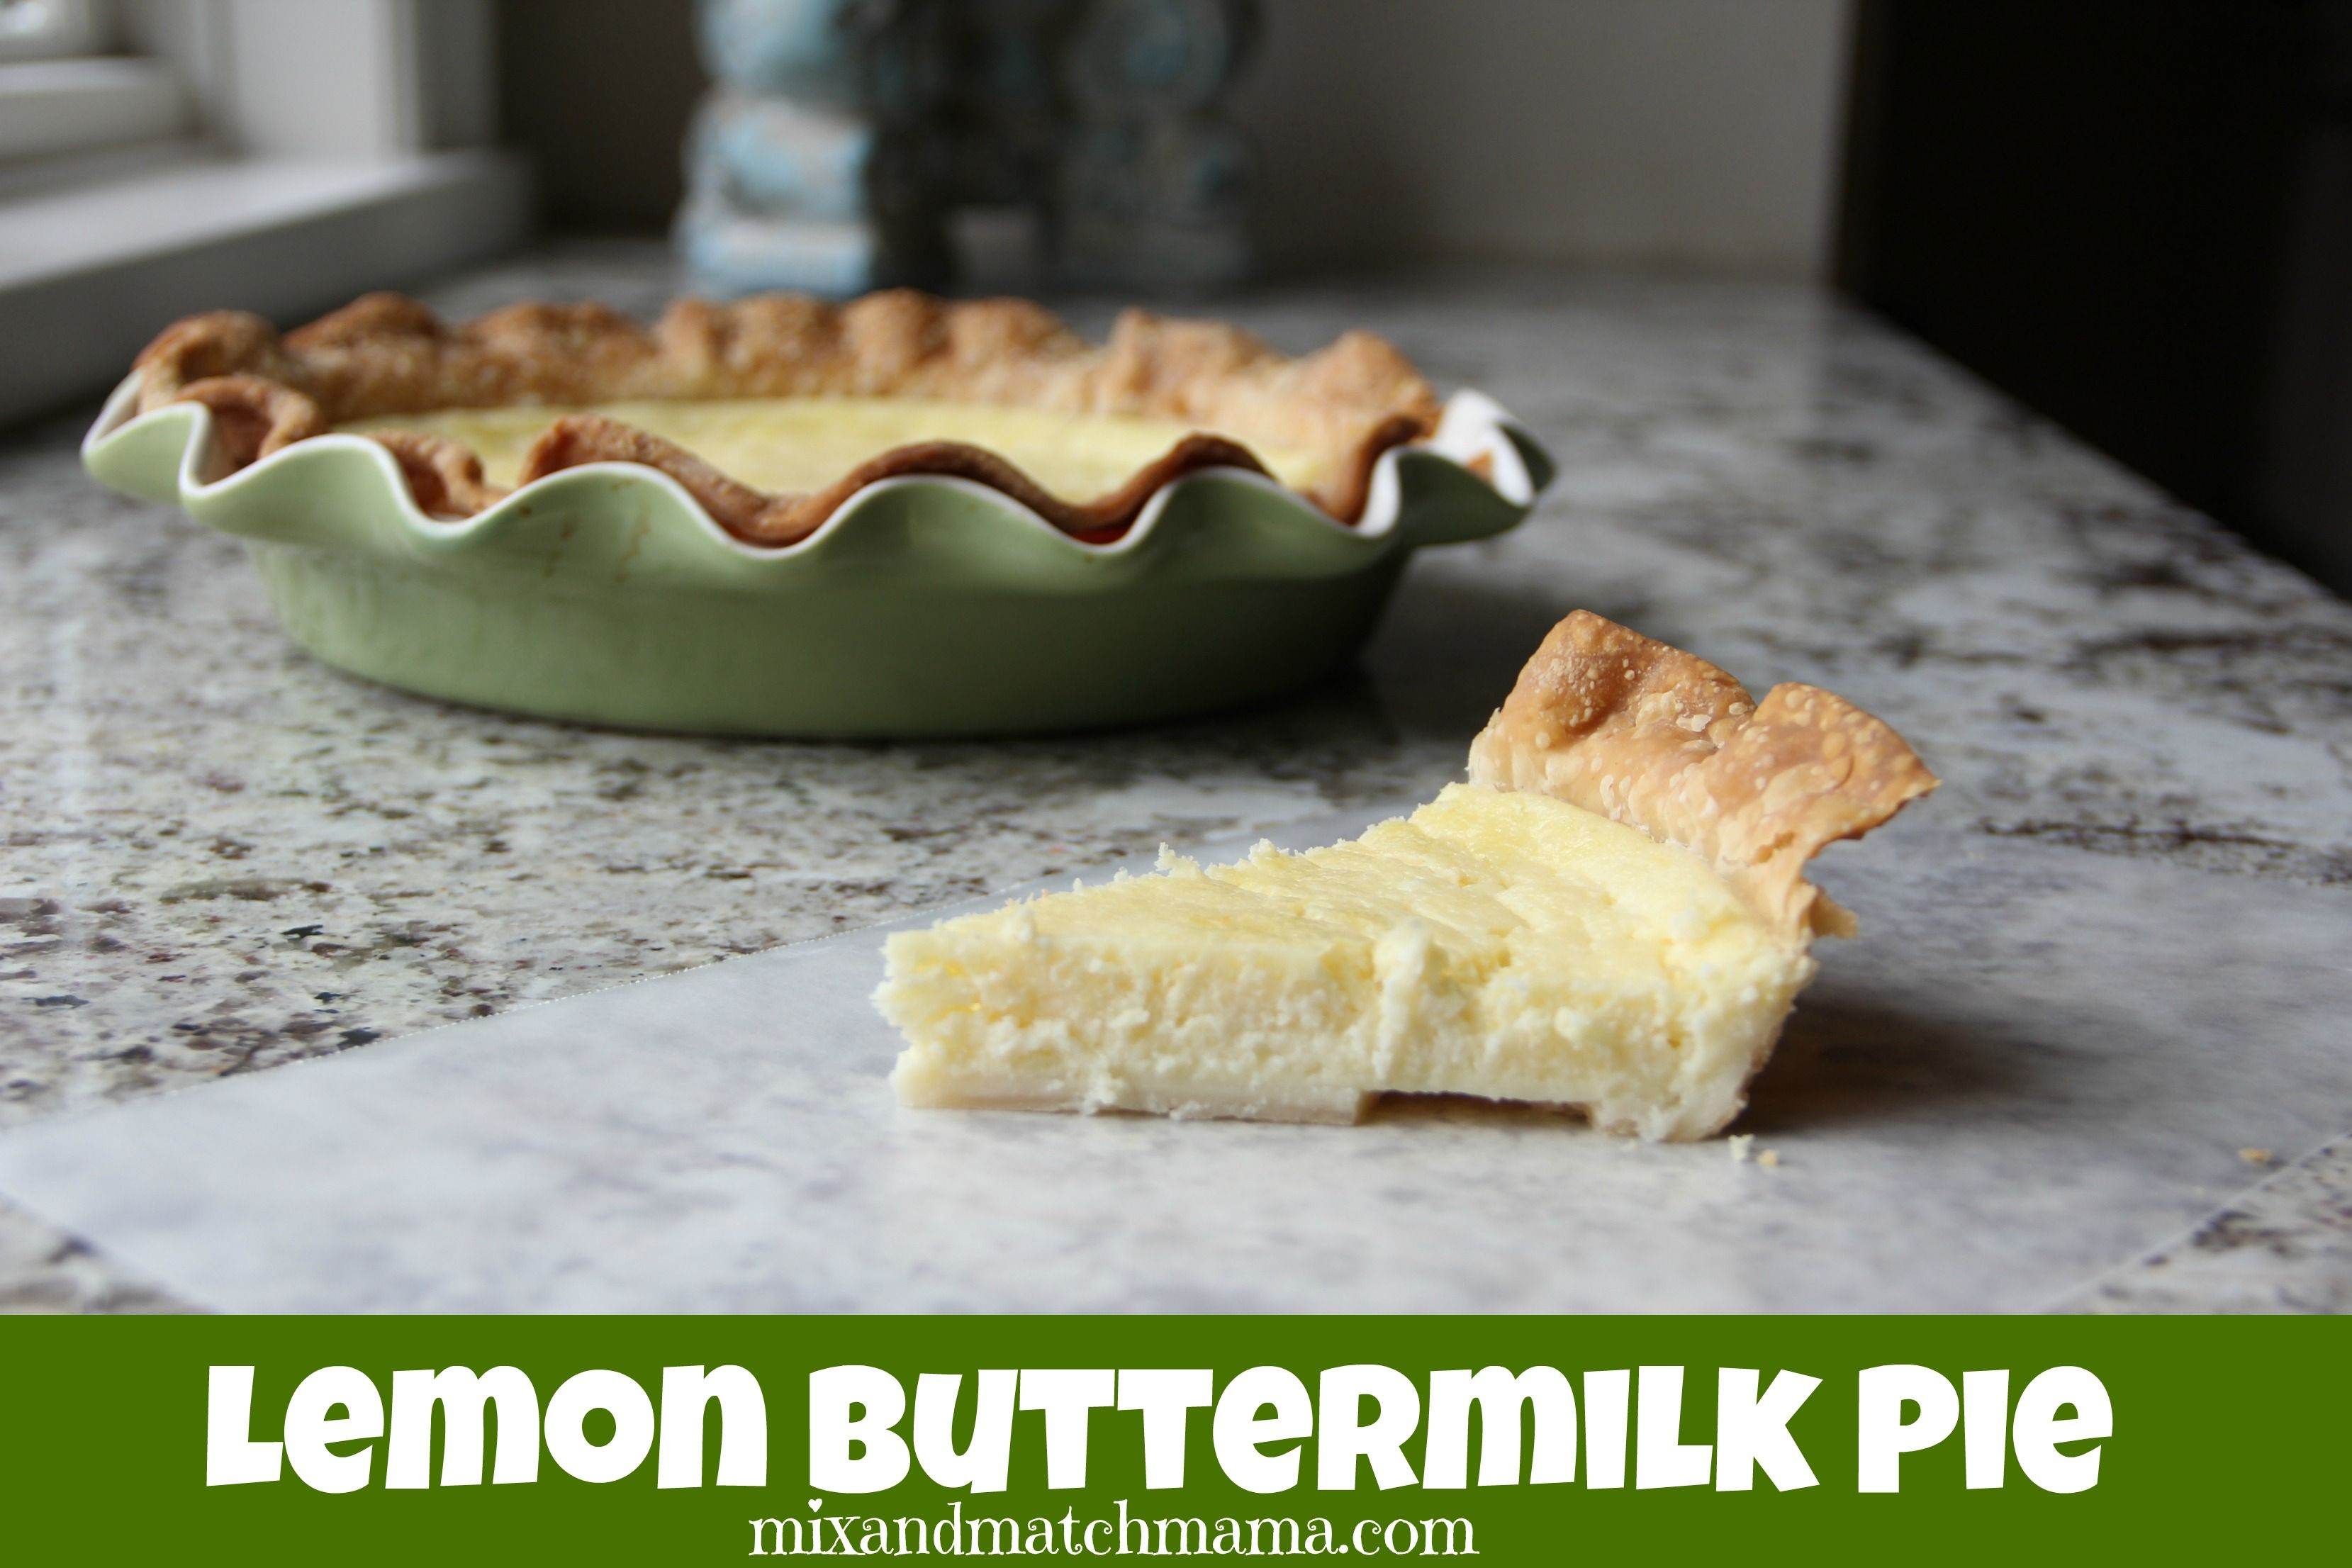 Lemon Buttermilk Pie Recipe Buttermilk Pie Food Pie Recipes